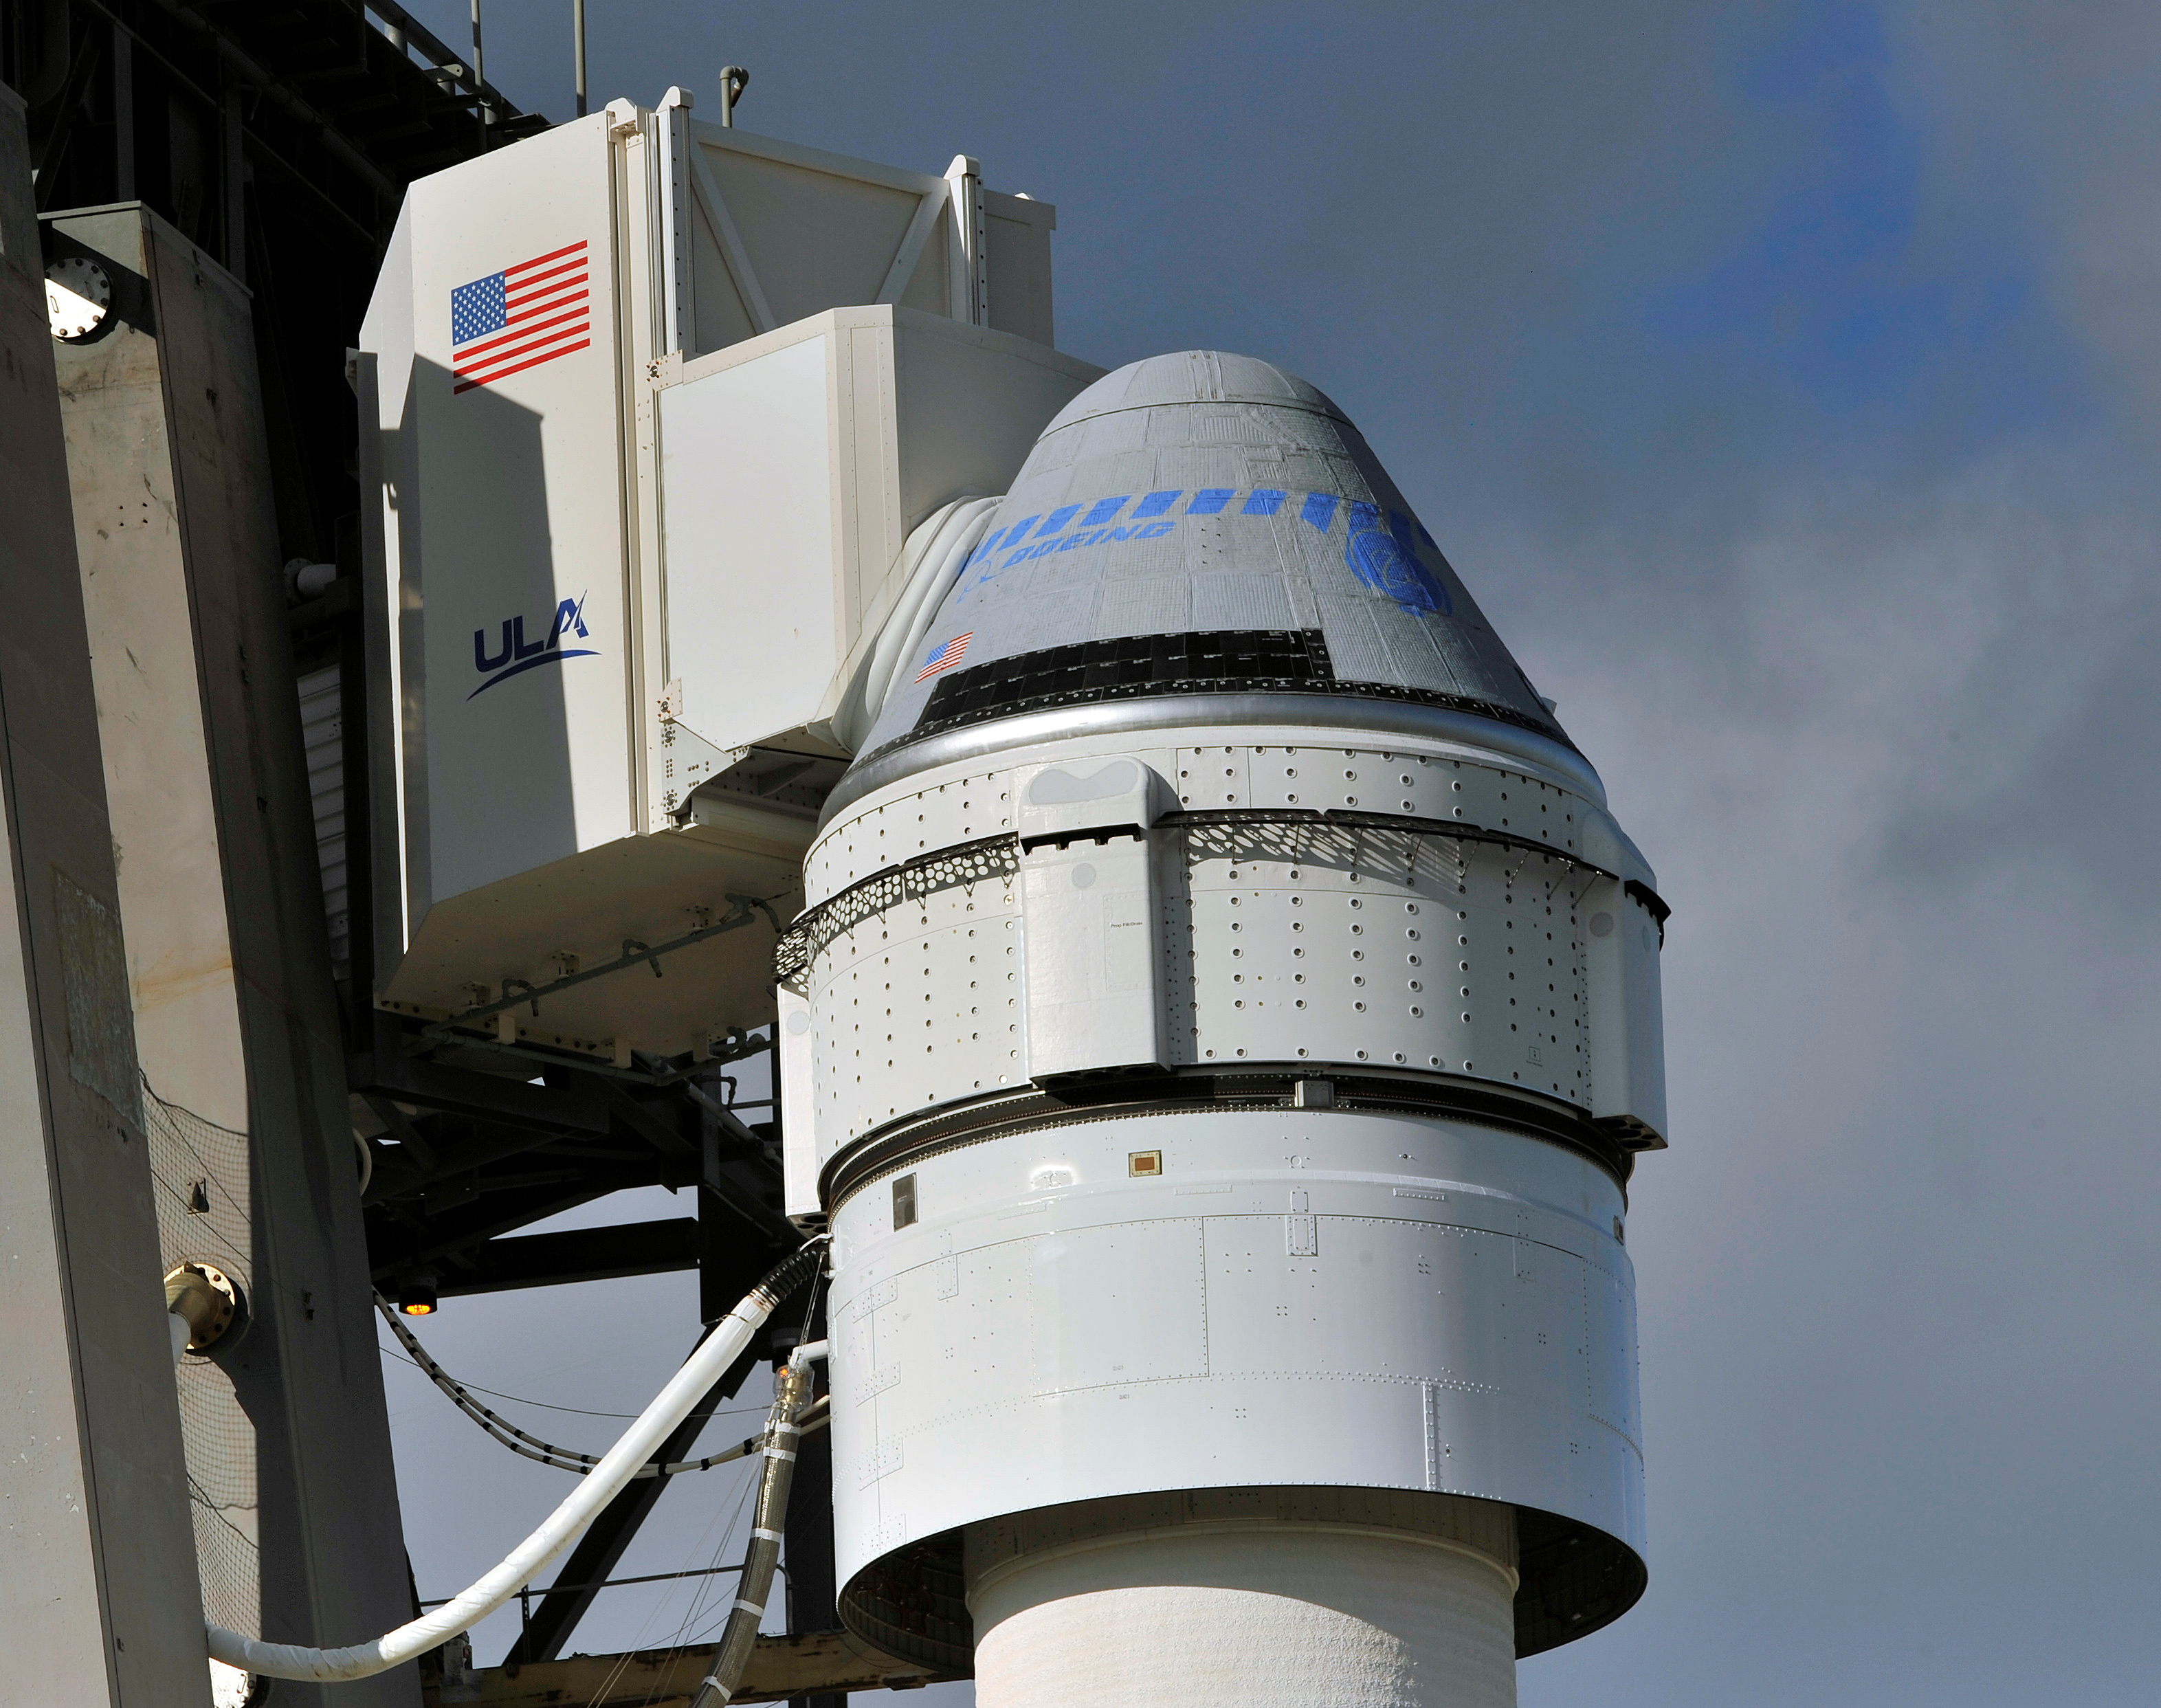 Boeing's botched Starliner test flirted with 'catastrophic' failure: NASA panel